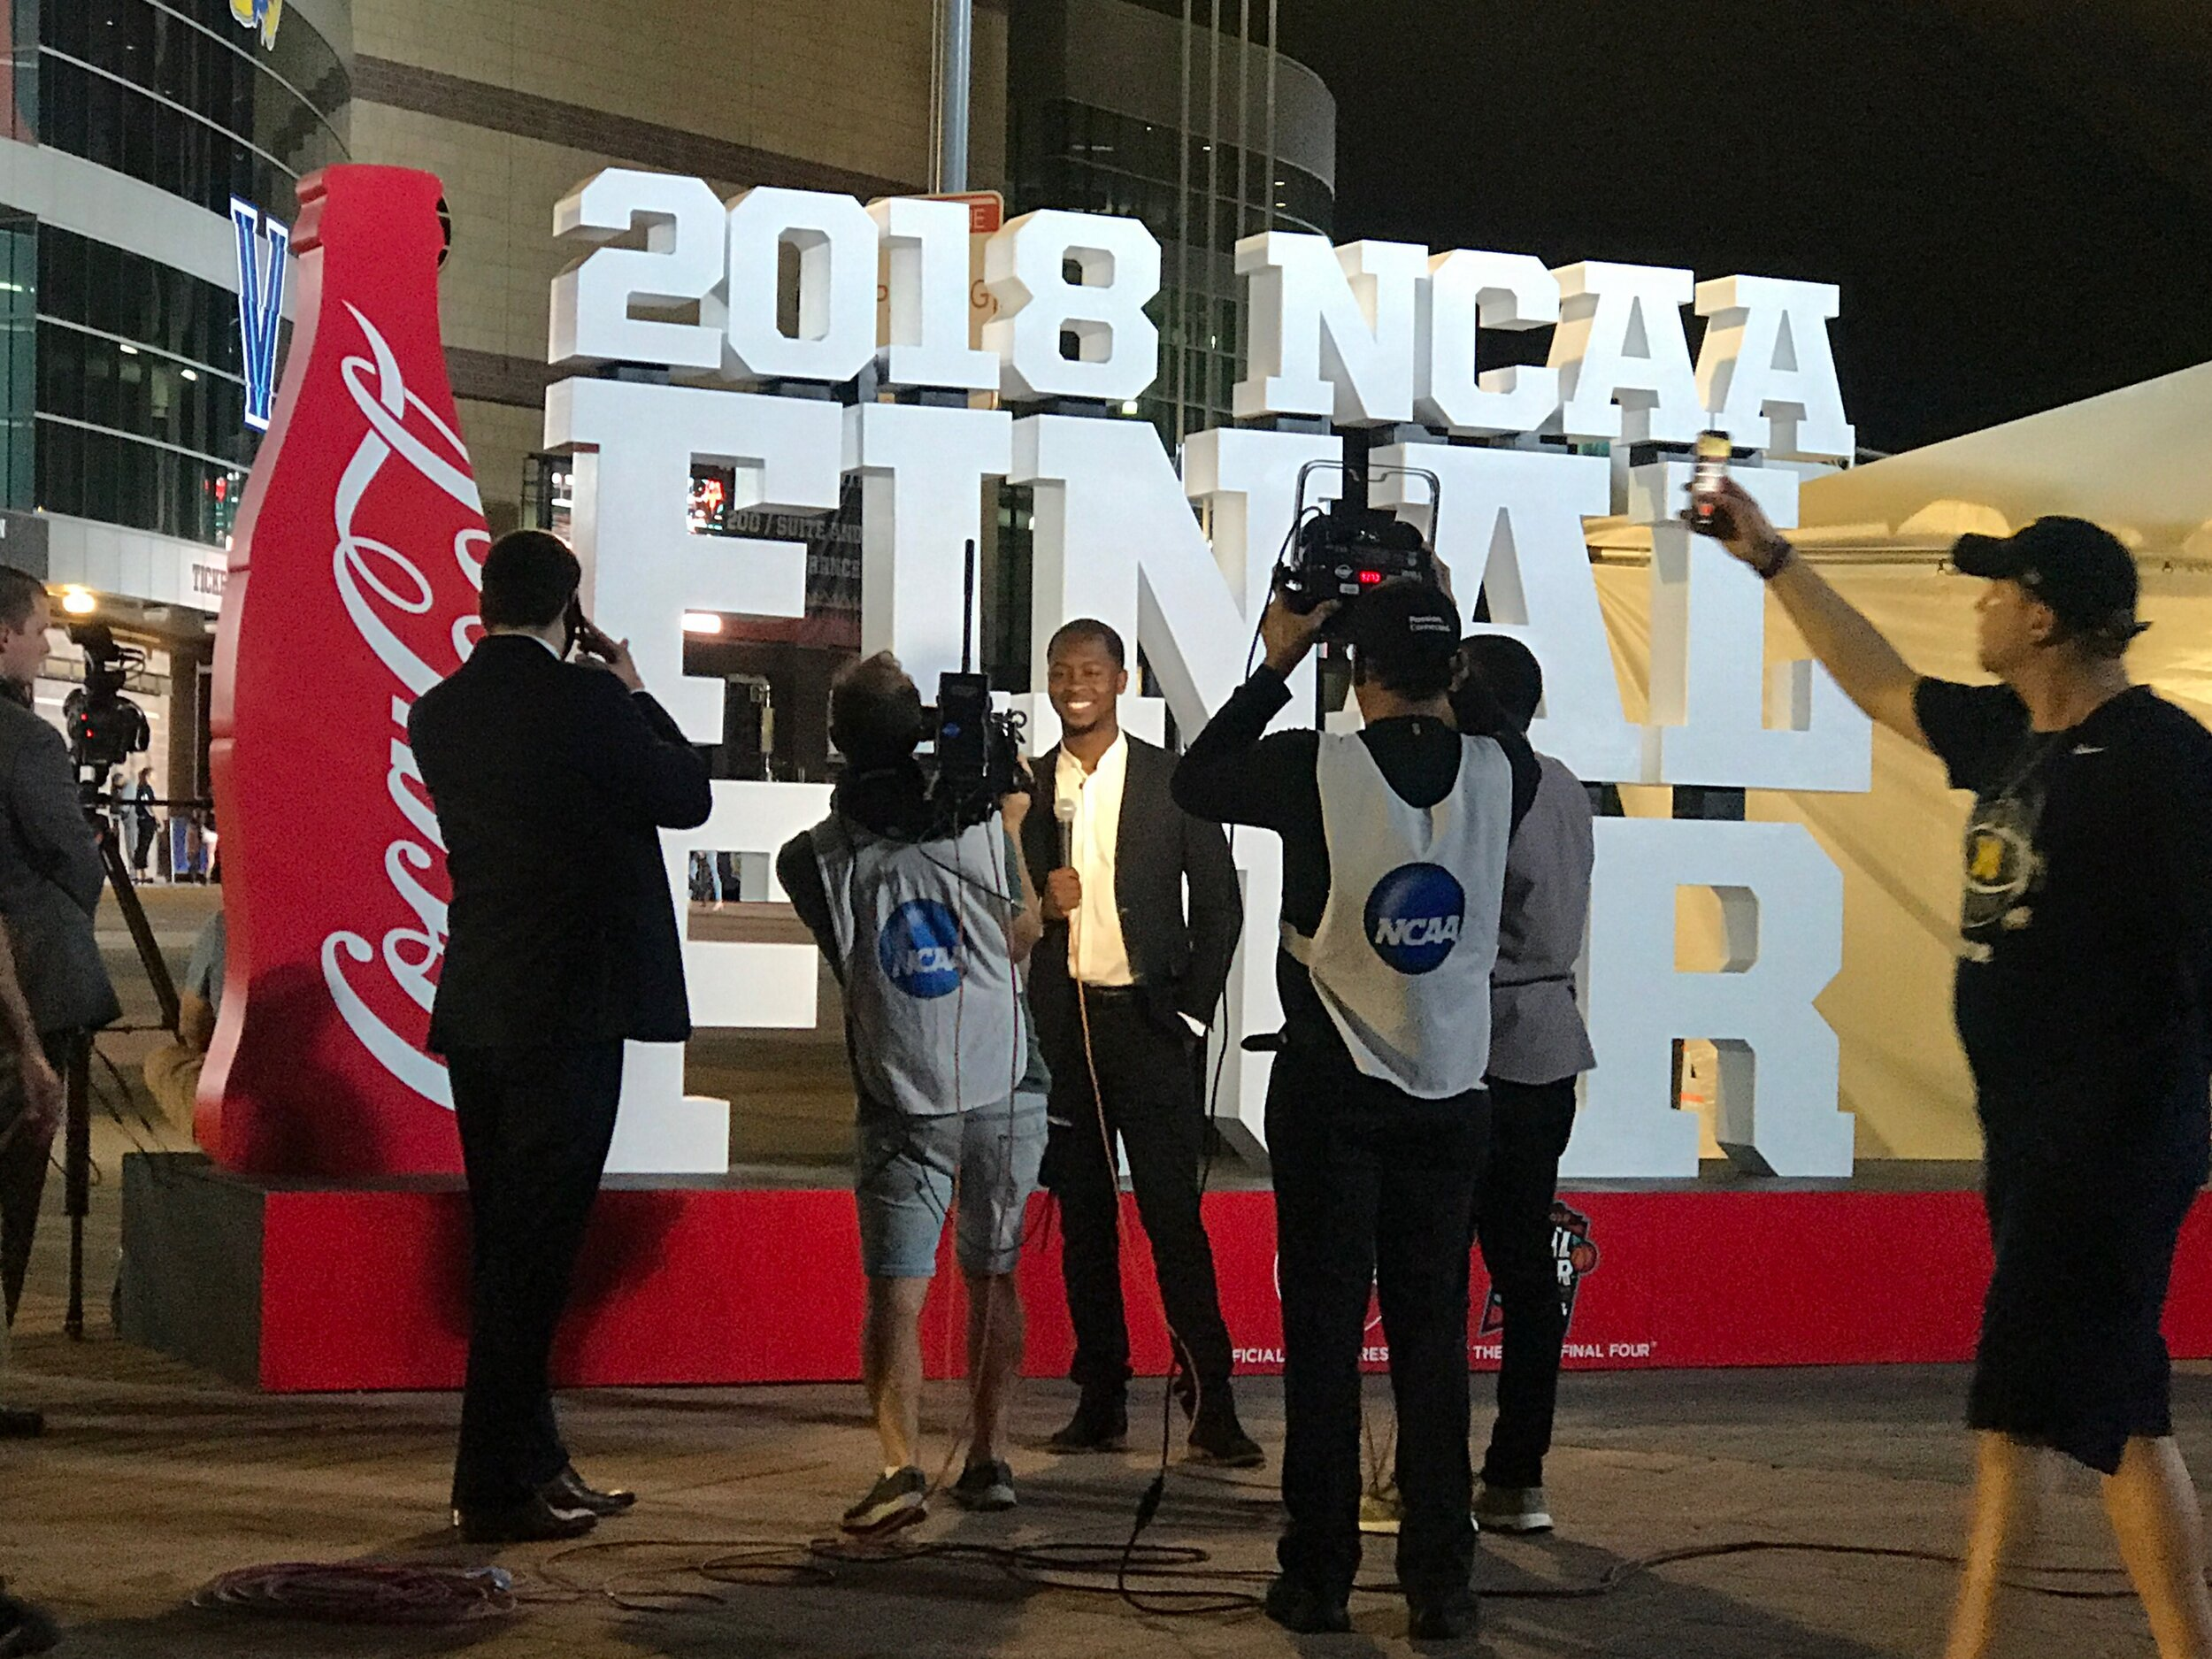 Atlanta Props™ Custom Event and Display Props - 2018 NCAA Final Four